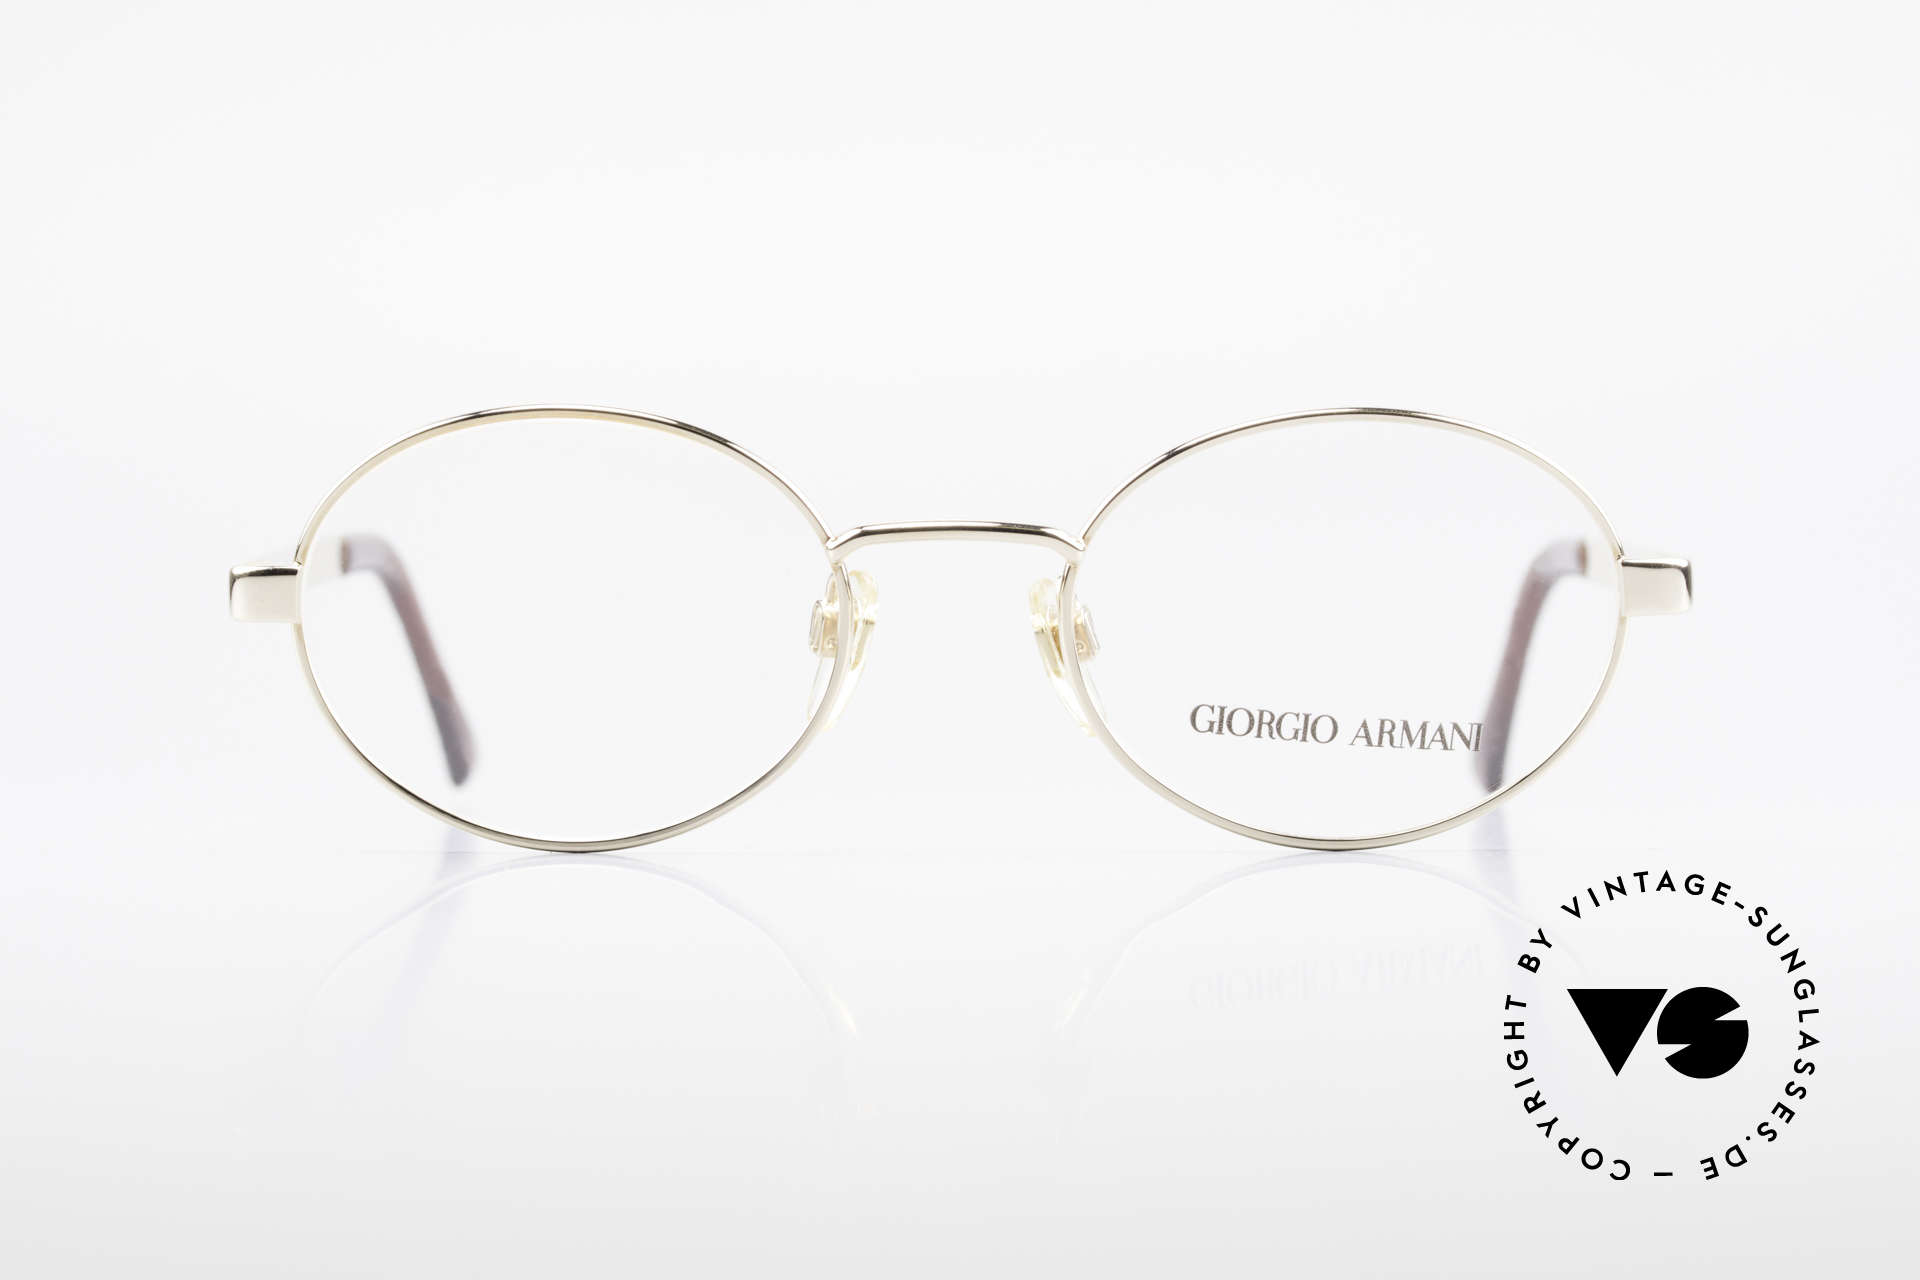 Giorgio Armani 257 Designer Vintage Frame Oval, sober, timeless style: suitable for many occasions, Made for Men and Women